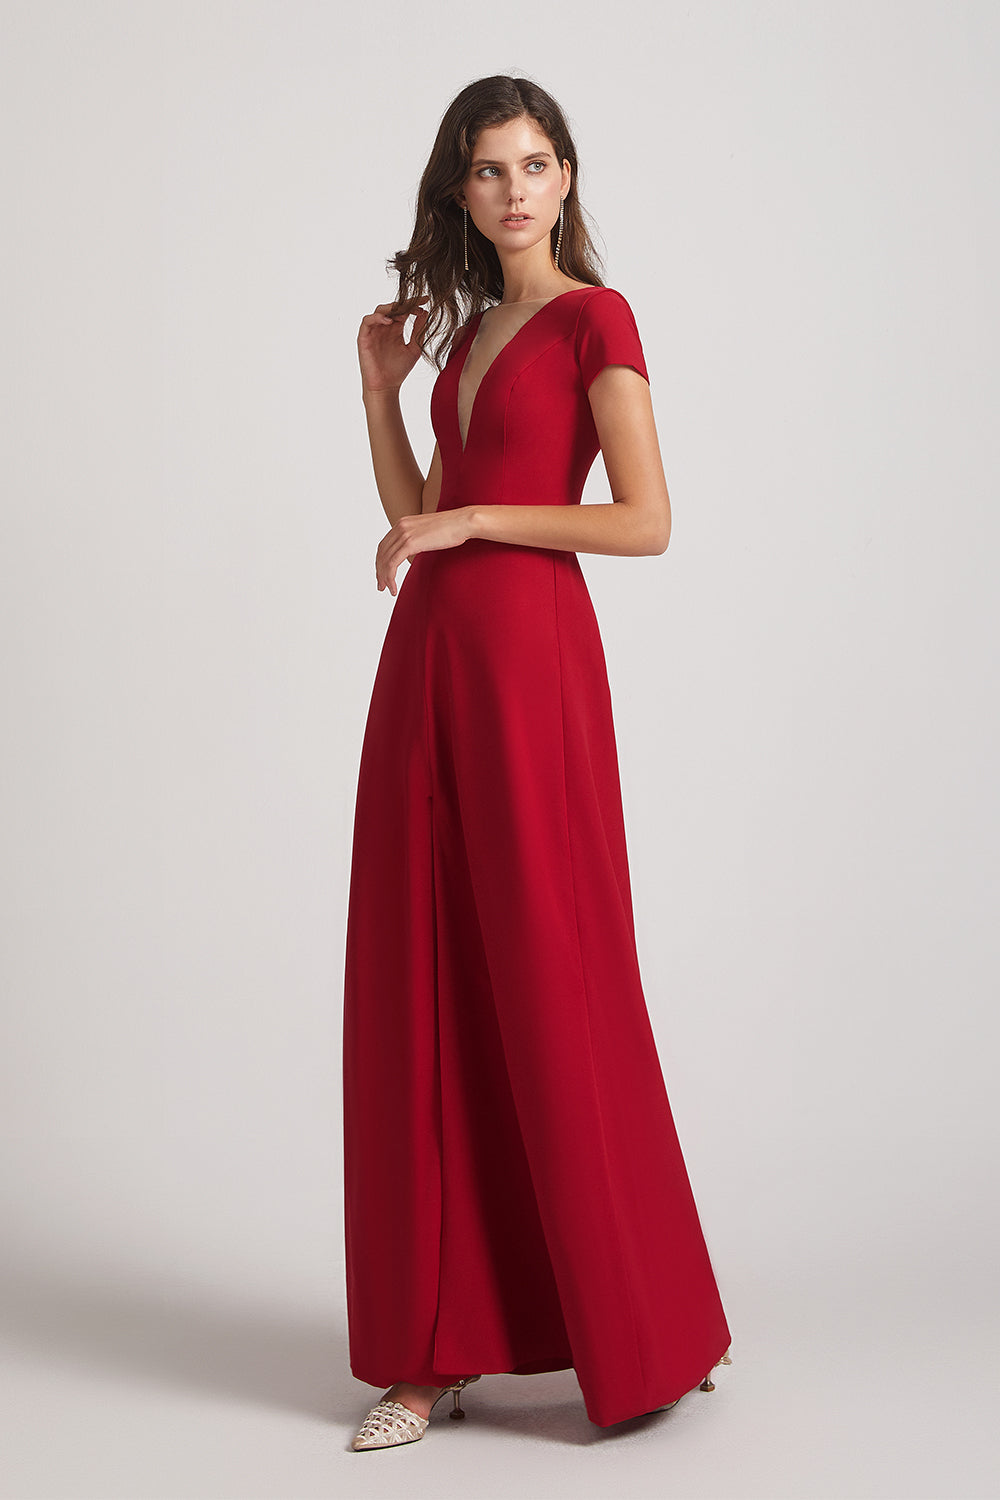 flowy red satin bridesmaids gowns